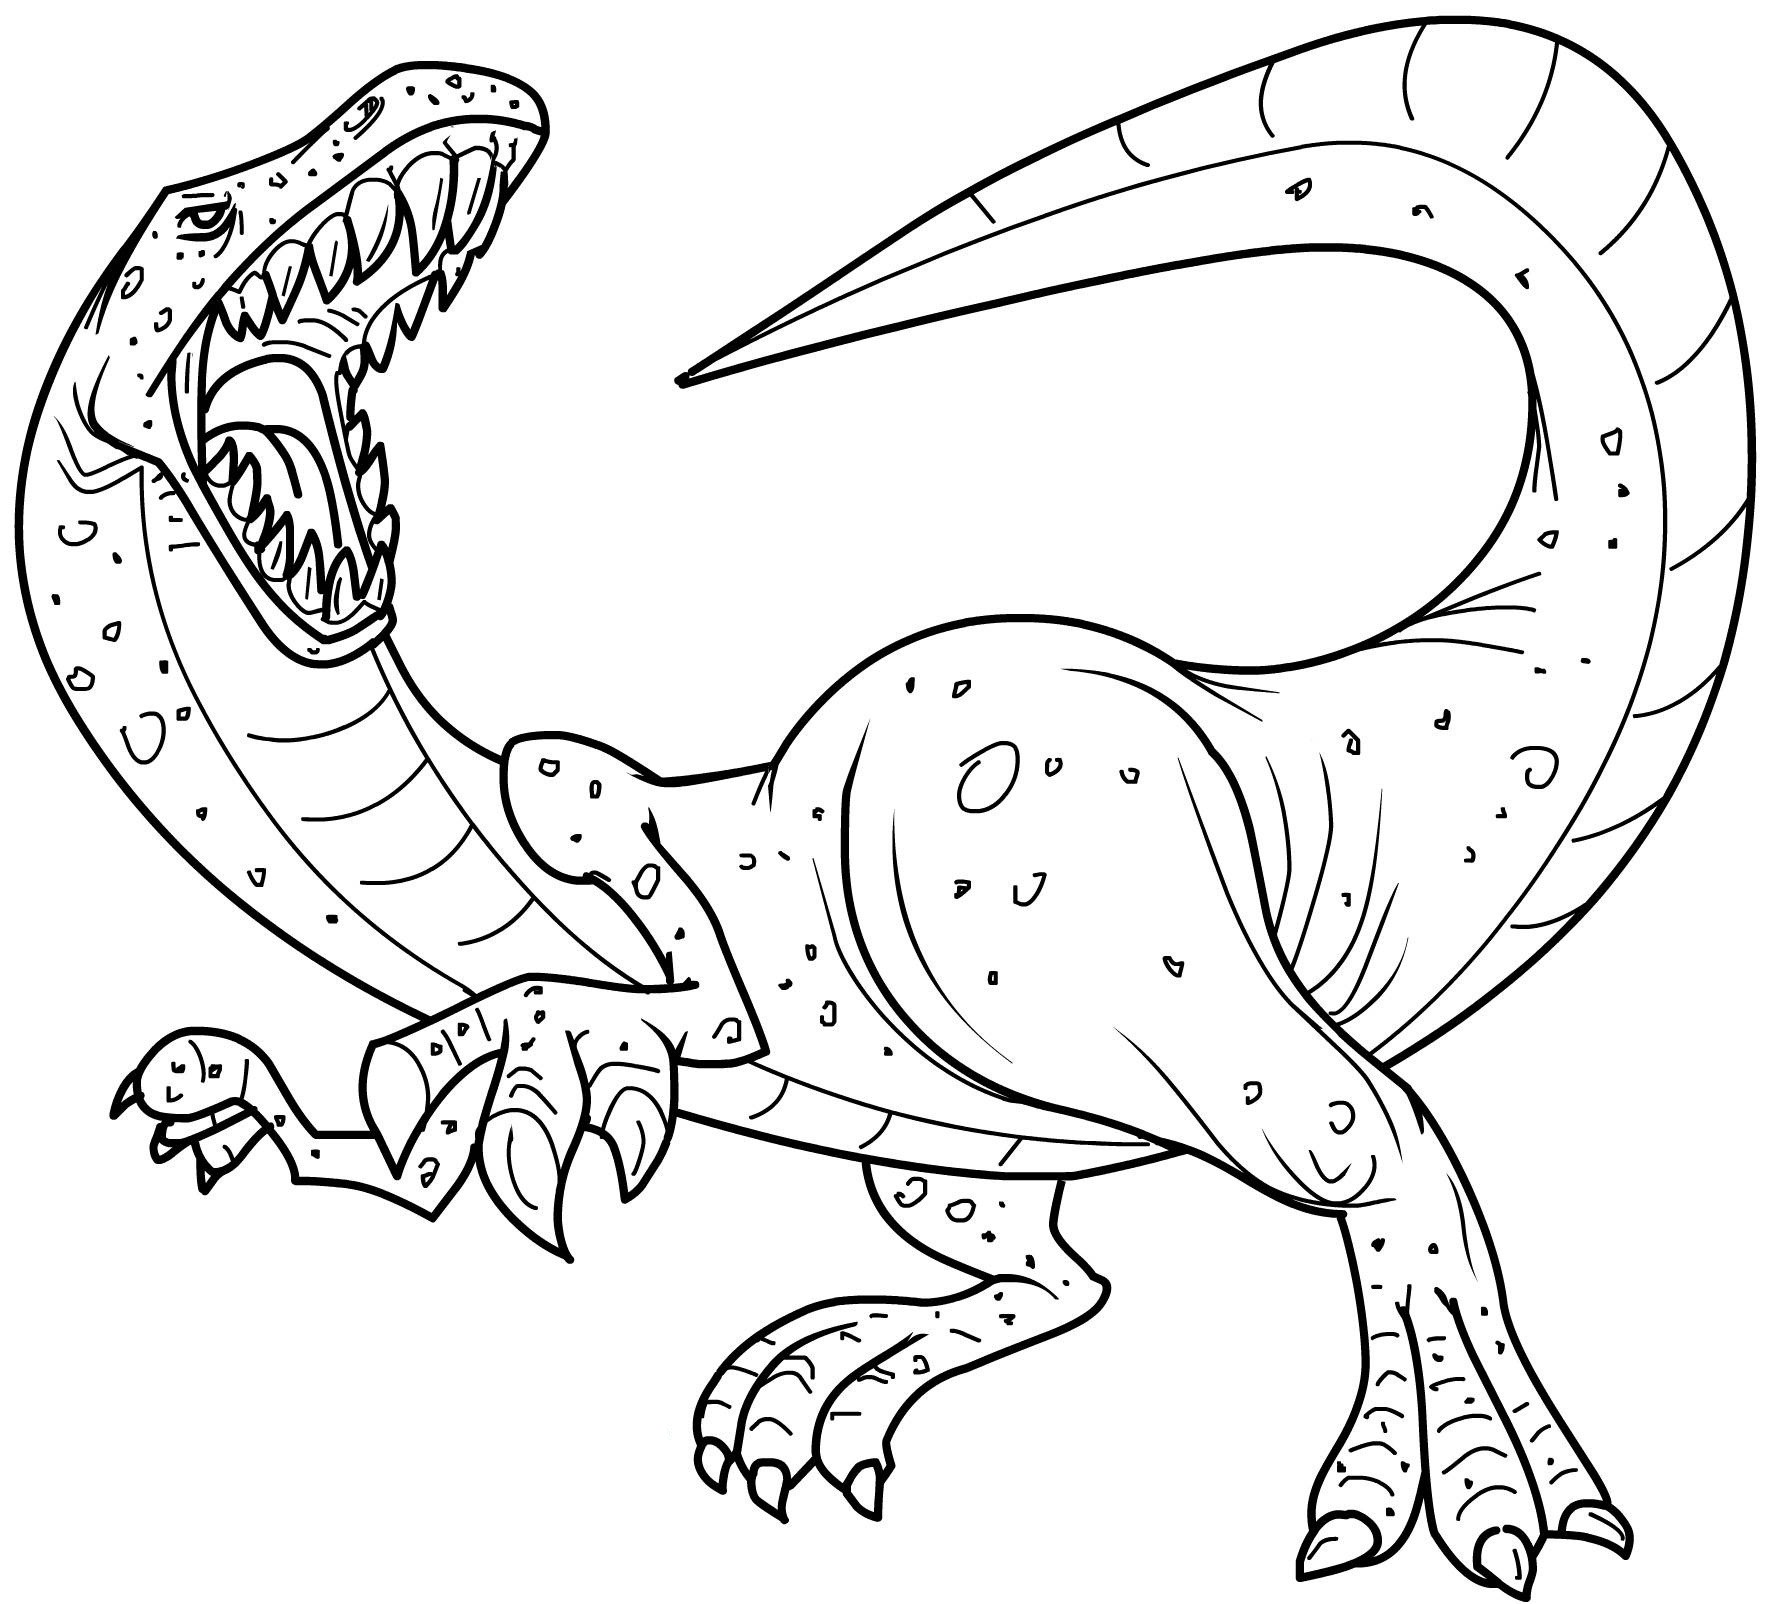 dinosaurs to colour in baby dinosaur coloring pages for preschoolers activity in to dinosaurs colour